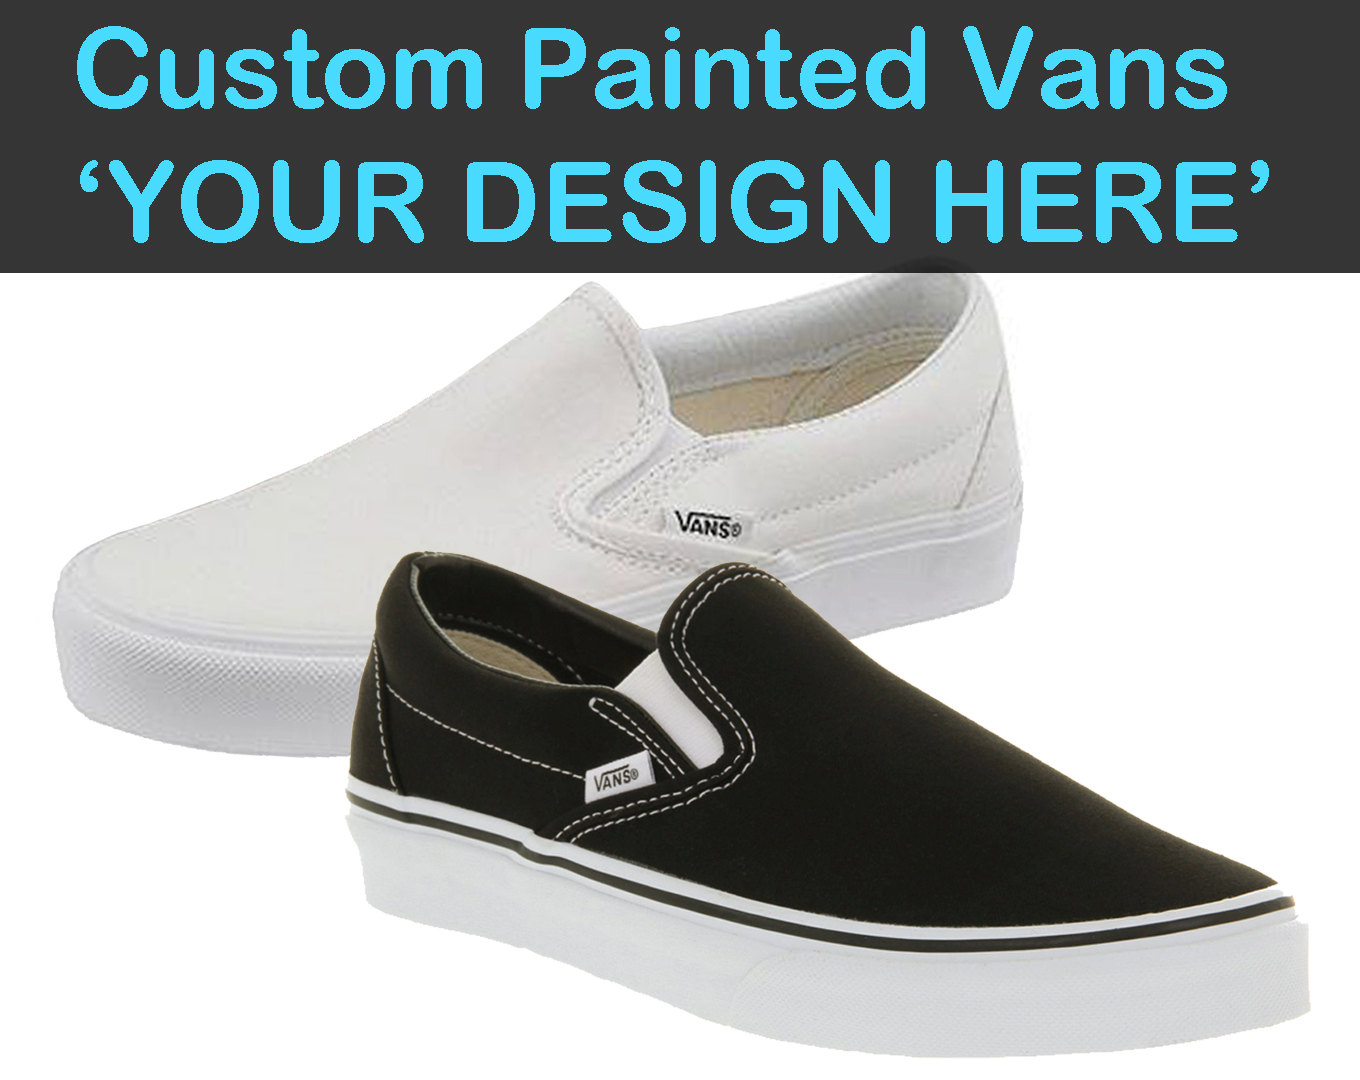 Drawn vans paint Painted Painted Canvas Shoes Choose